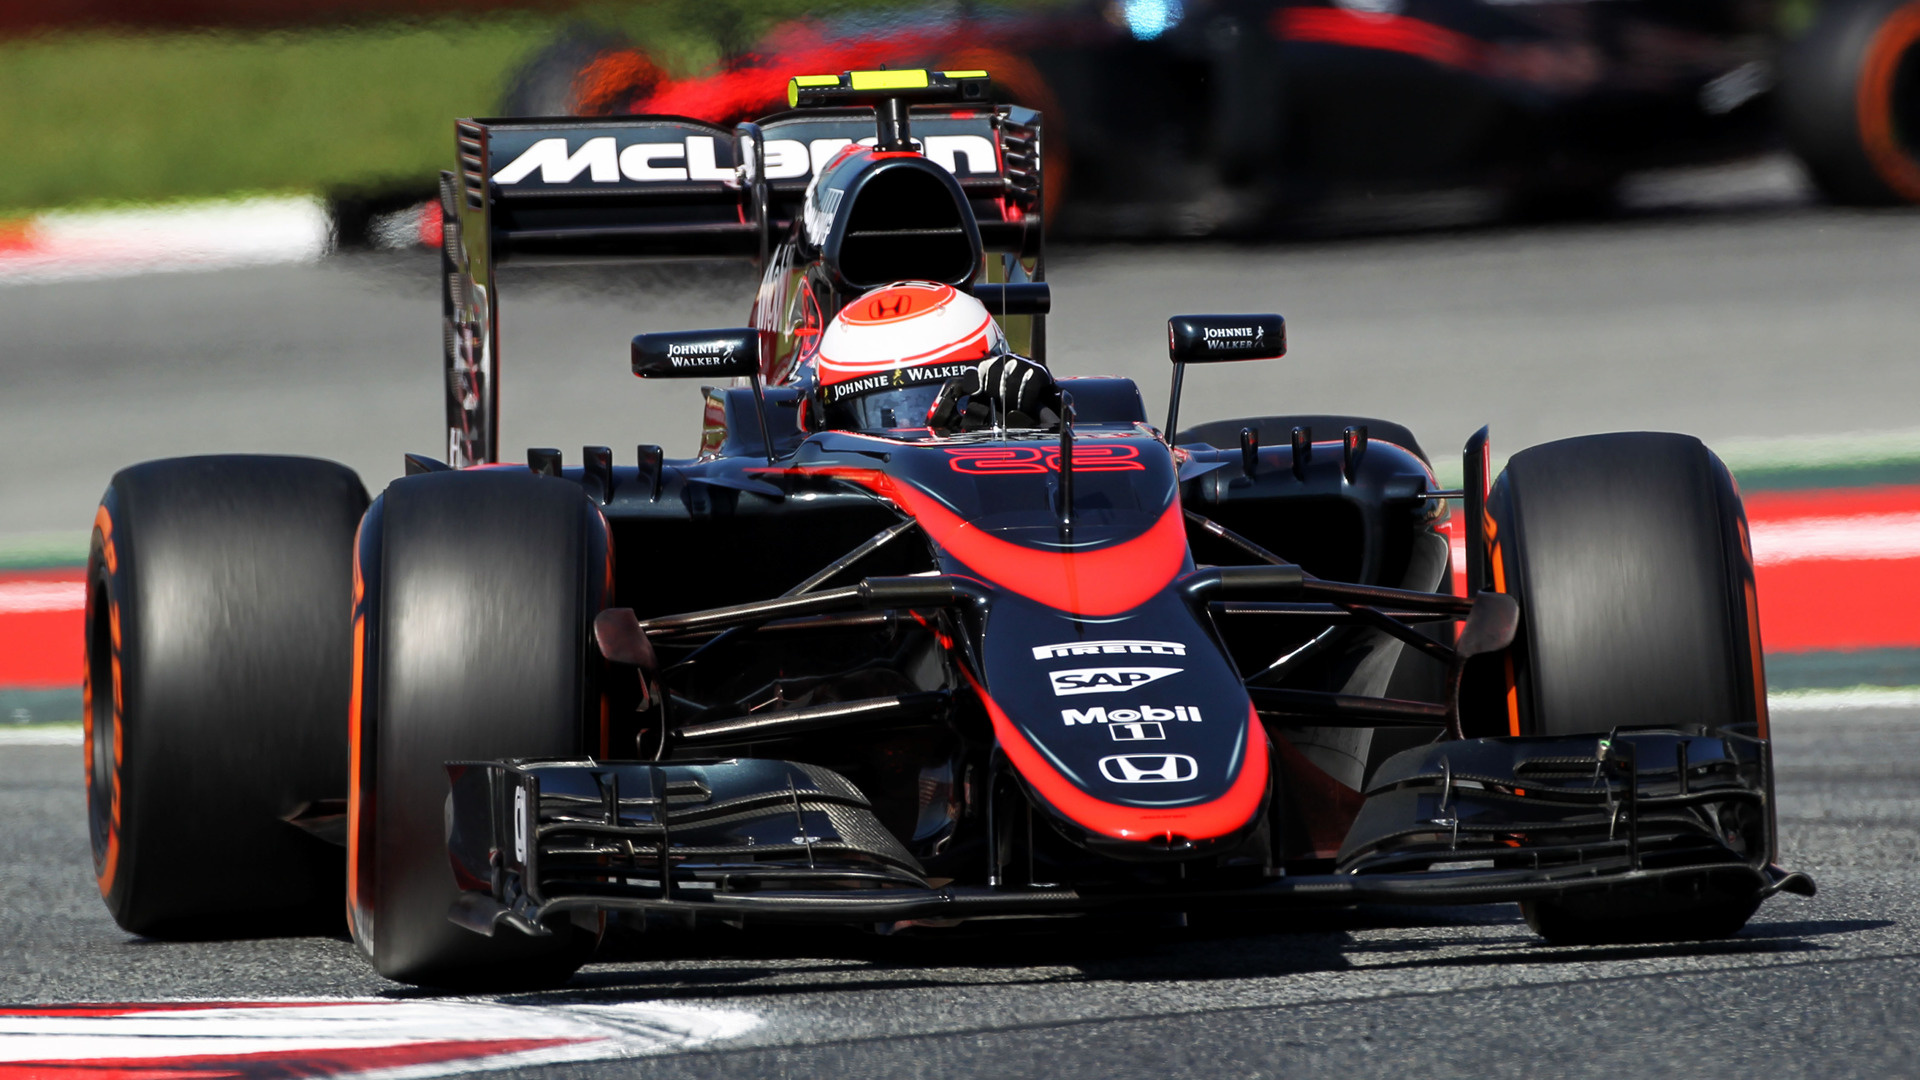 2015 Mclaren Honda Mp4 30 Wallpapers And Hd Images Car